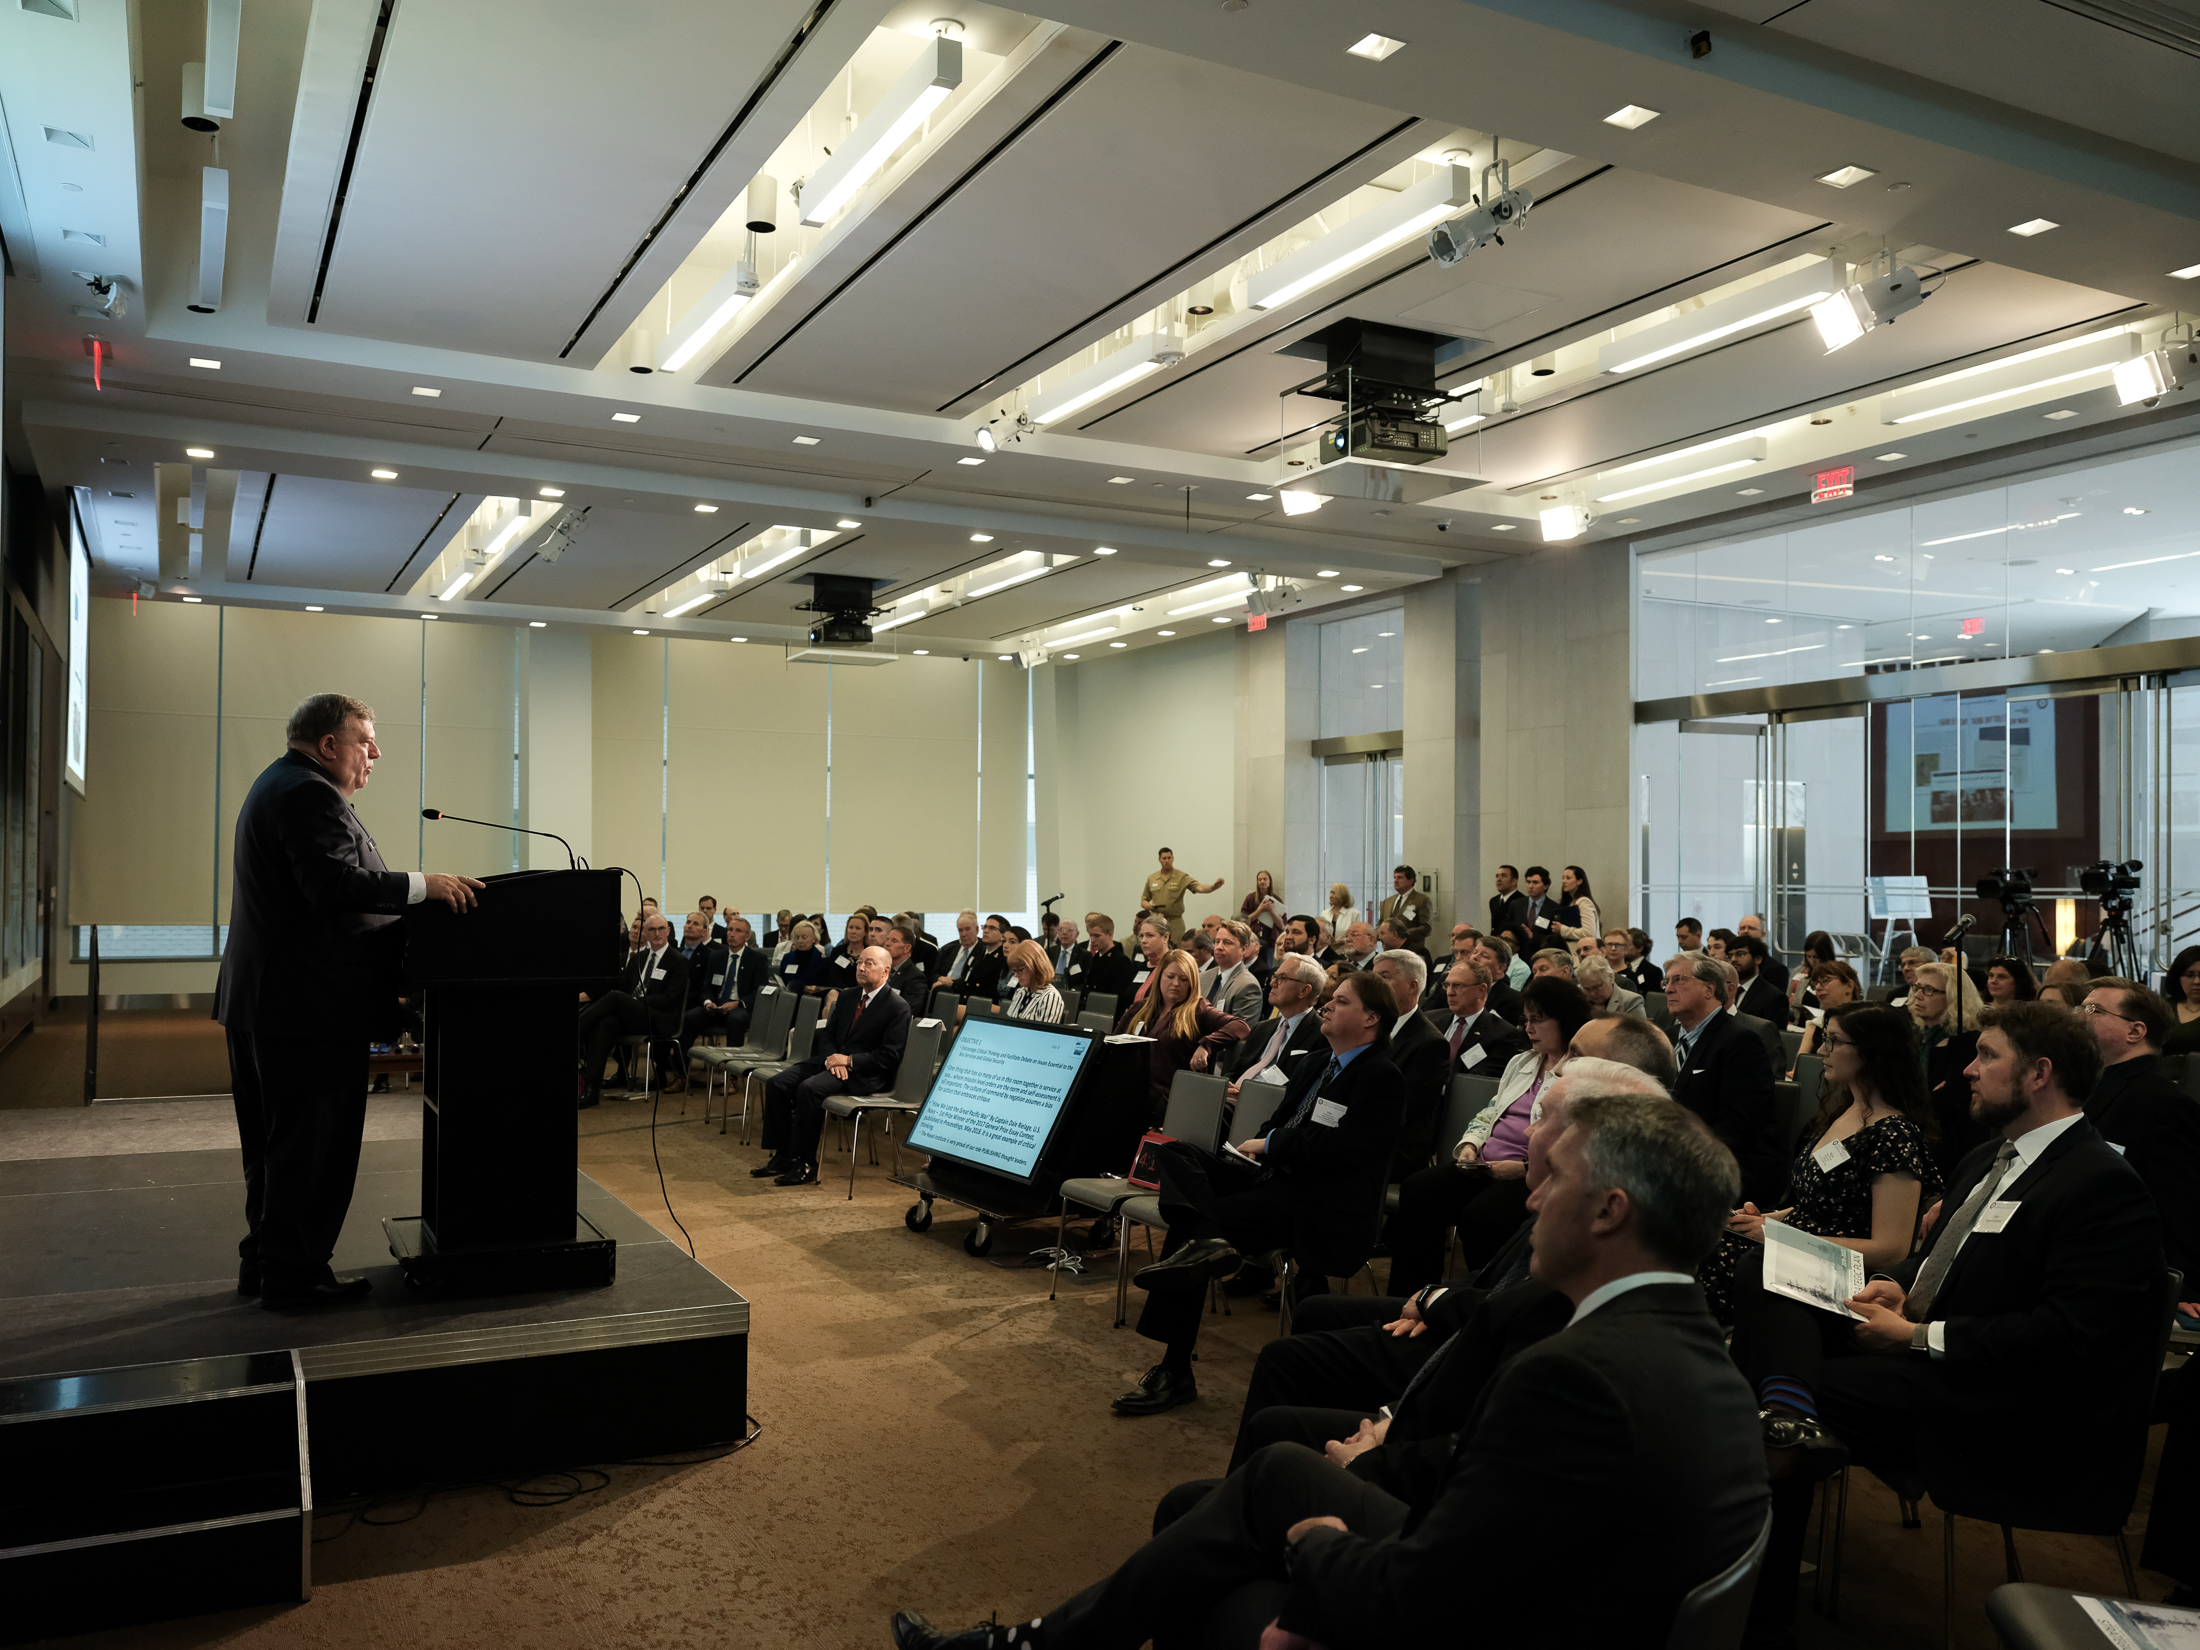 dc-conference-photographer-1063.jpg